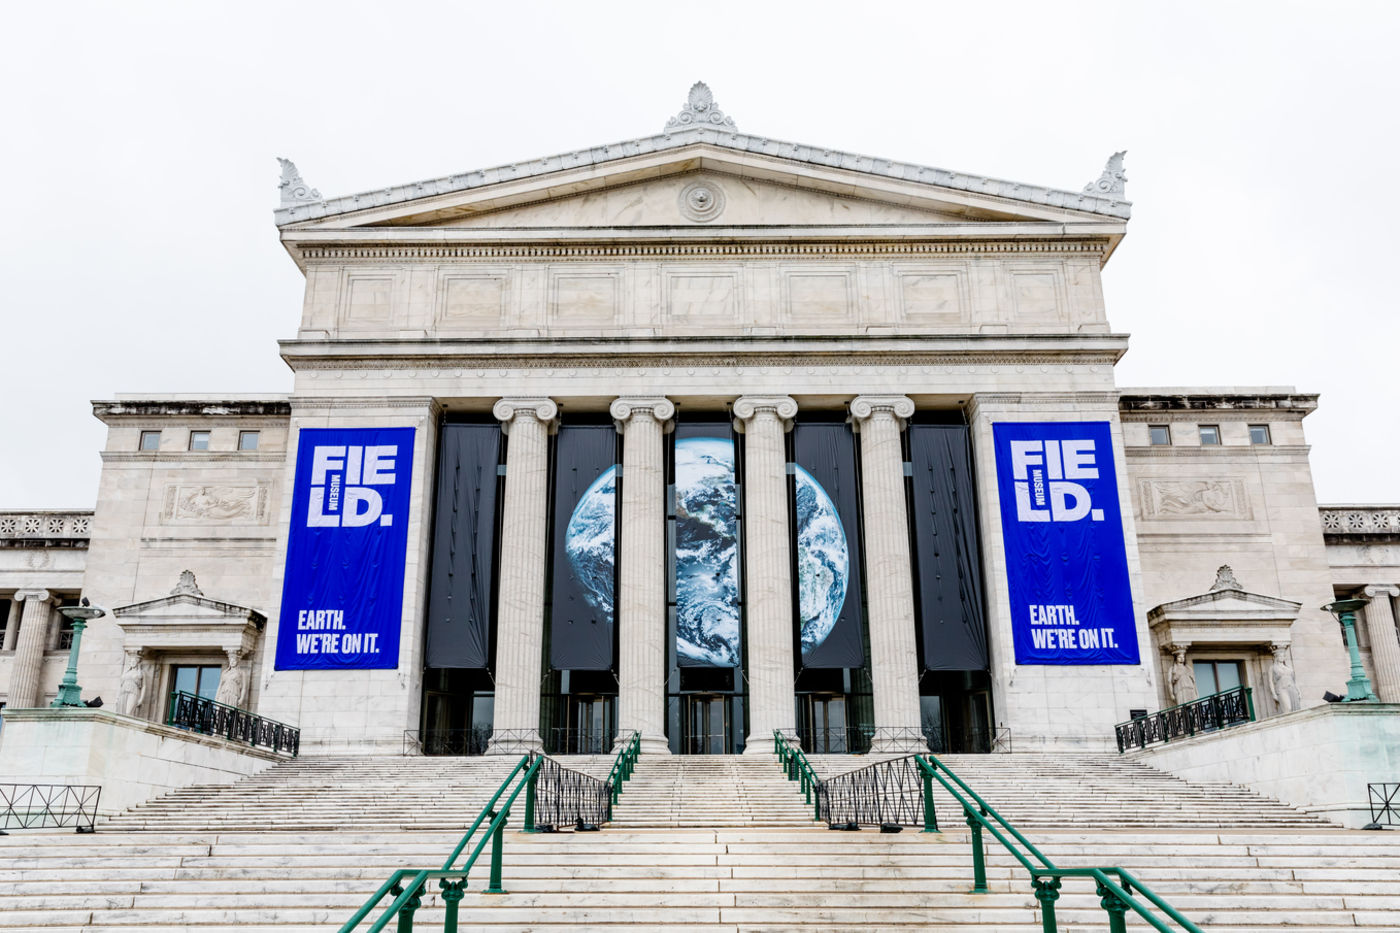 "Looking up at the North facade of the Field Museum from the bottom of its long front staircase. Two blue banners with the Field Museum's logo read, ""Earth. We're on it."" and frame a large satellite image of Earth from space on a black background."